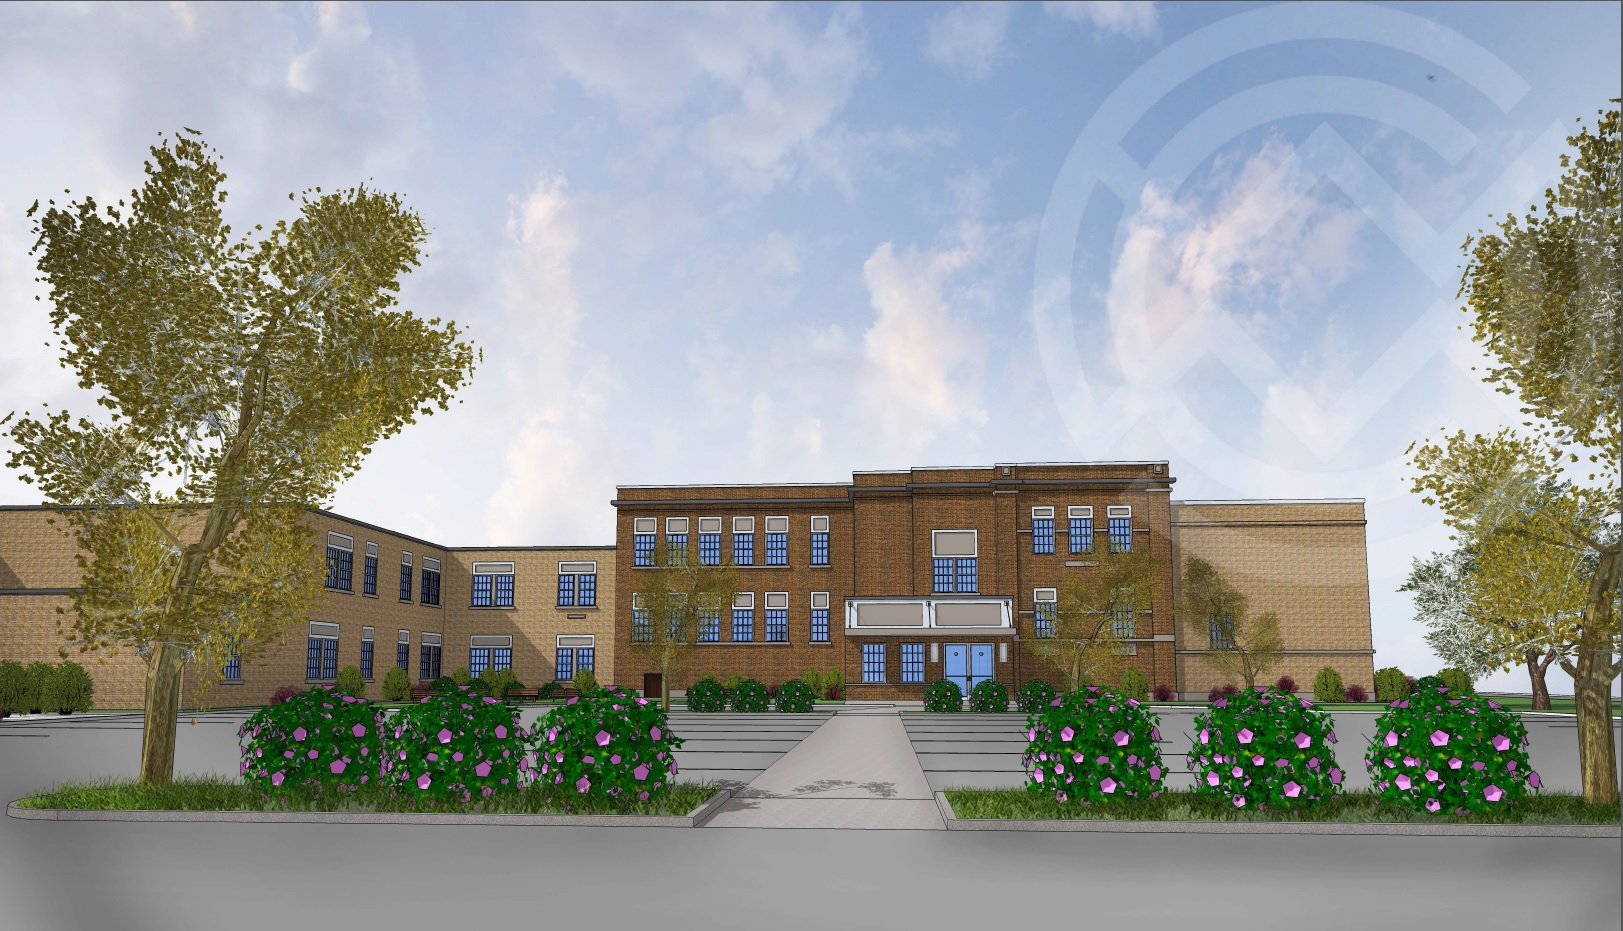 The former Highland Elementary School will reopen as Highland School Apartments for disabled and low-income residents.